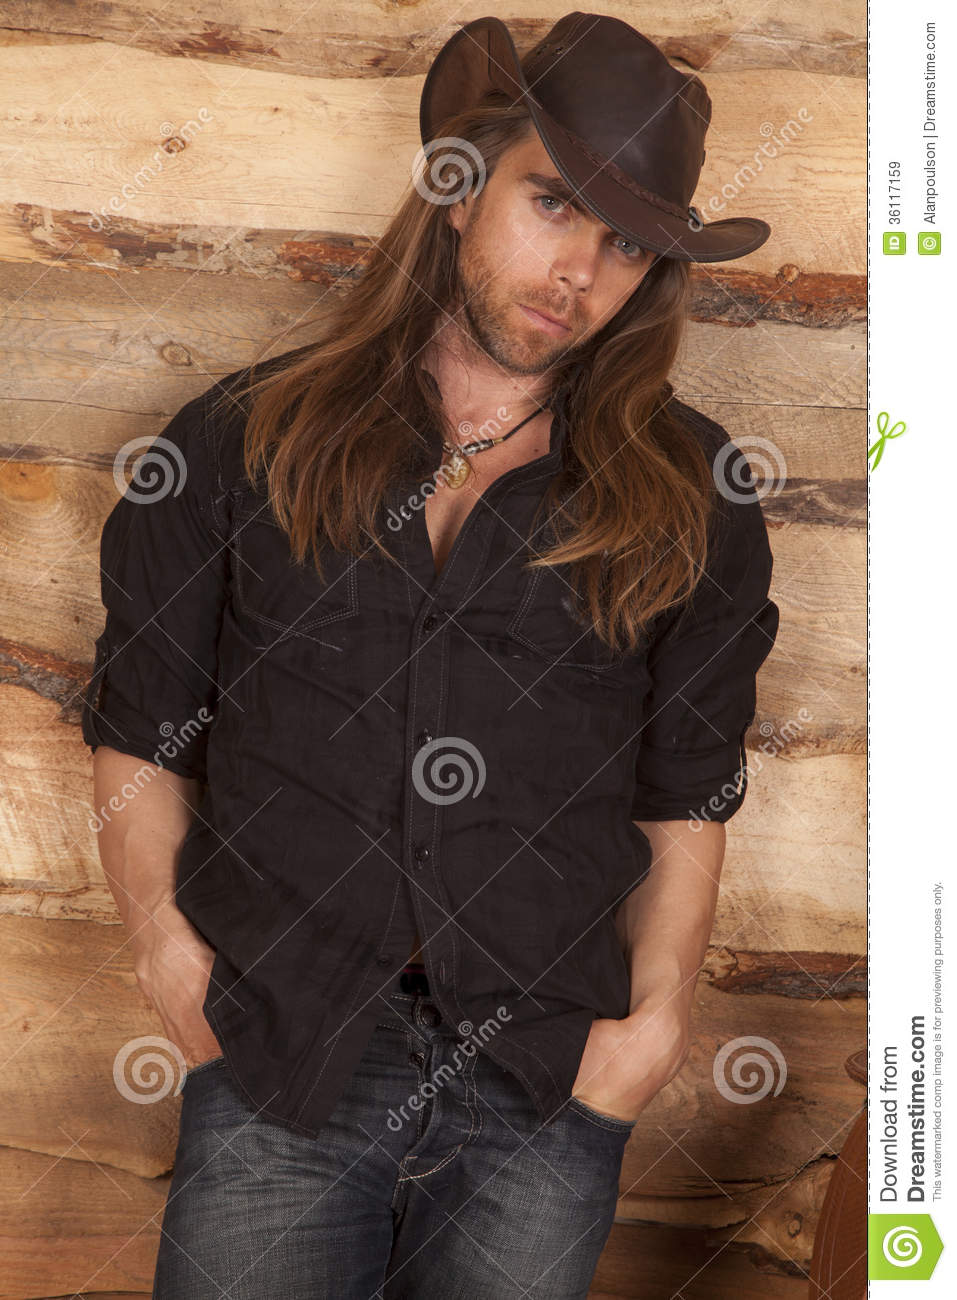 b6b21603dc1d4 A cowboy leaning up against a wood wall with a serious expression on his  face.